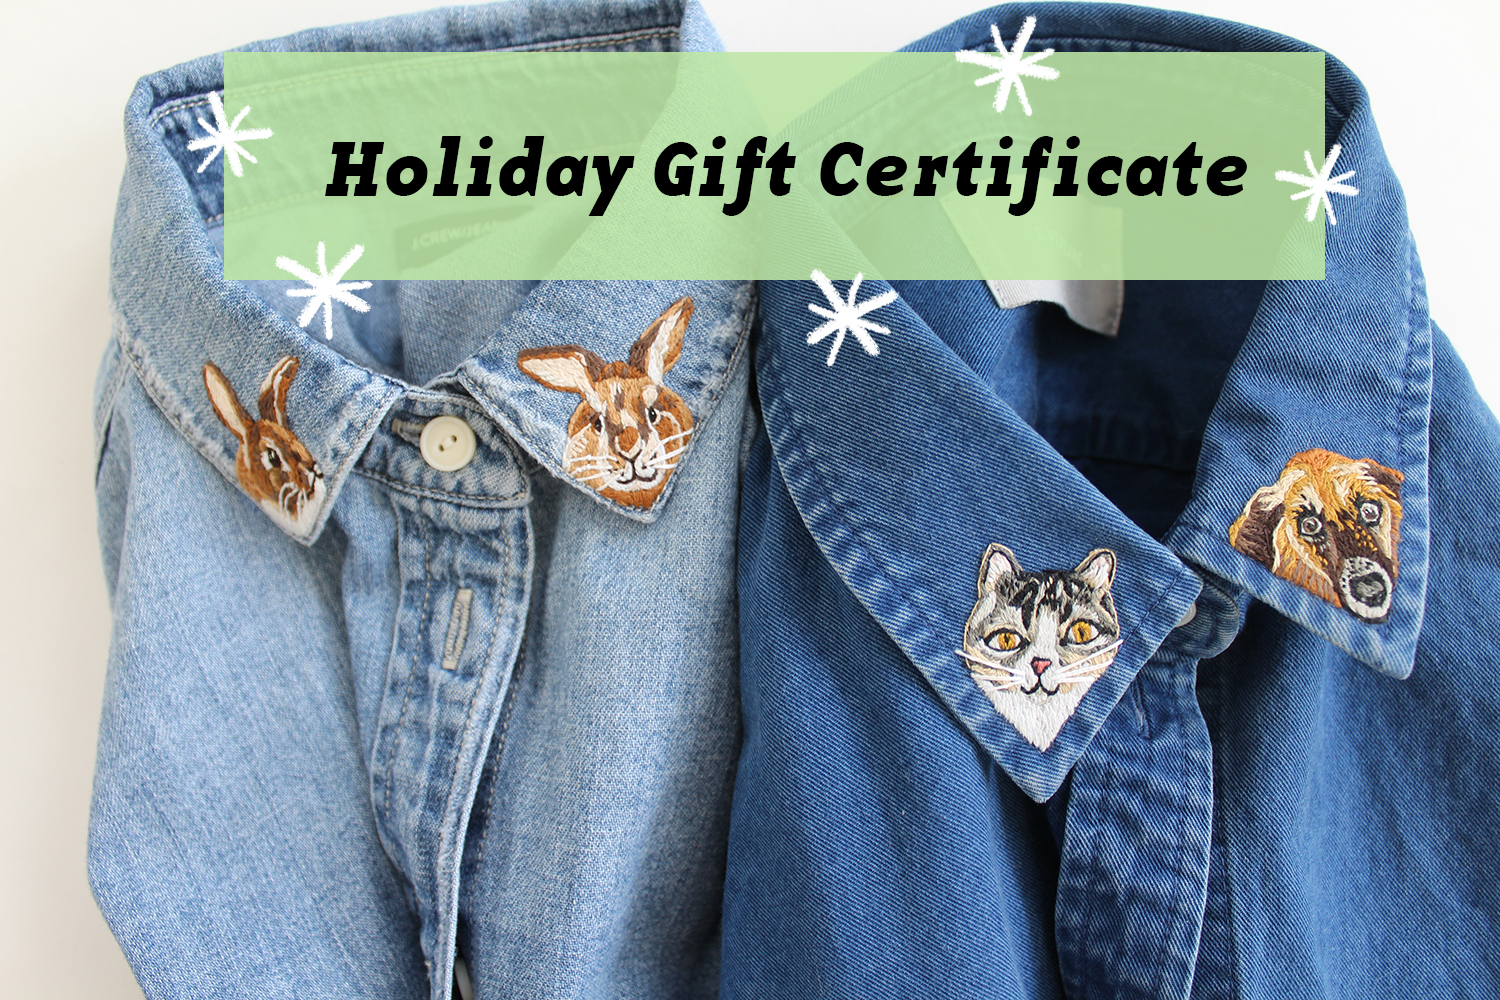 Looking for a Personalized Holiday Gift? Give Someone an Embroidered 'Pet Collar' Shirt